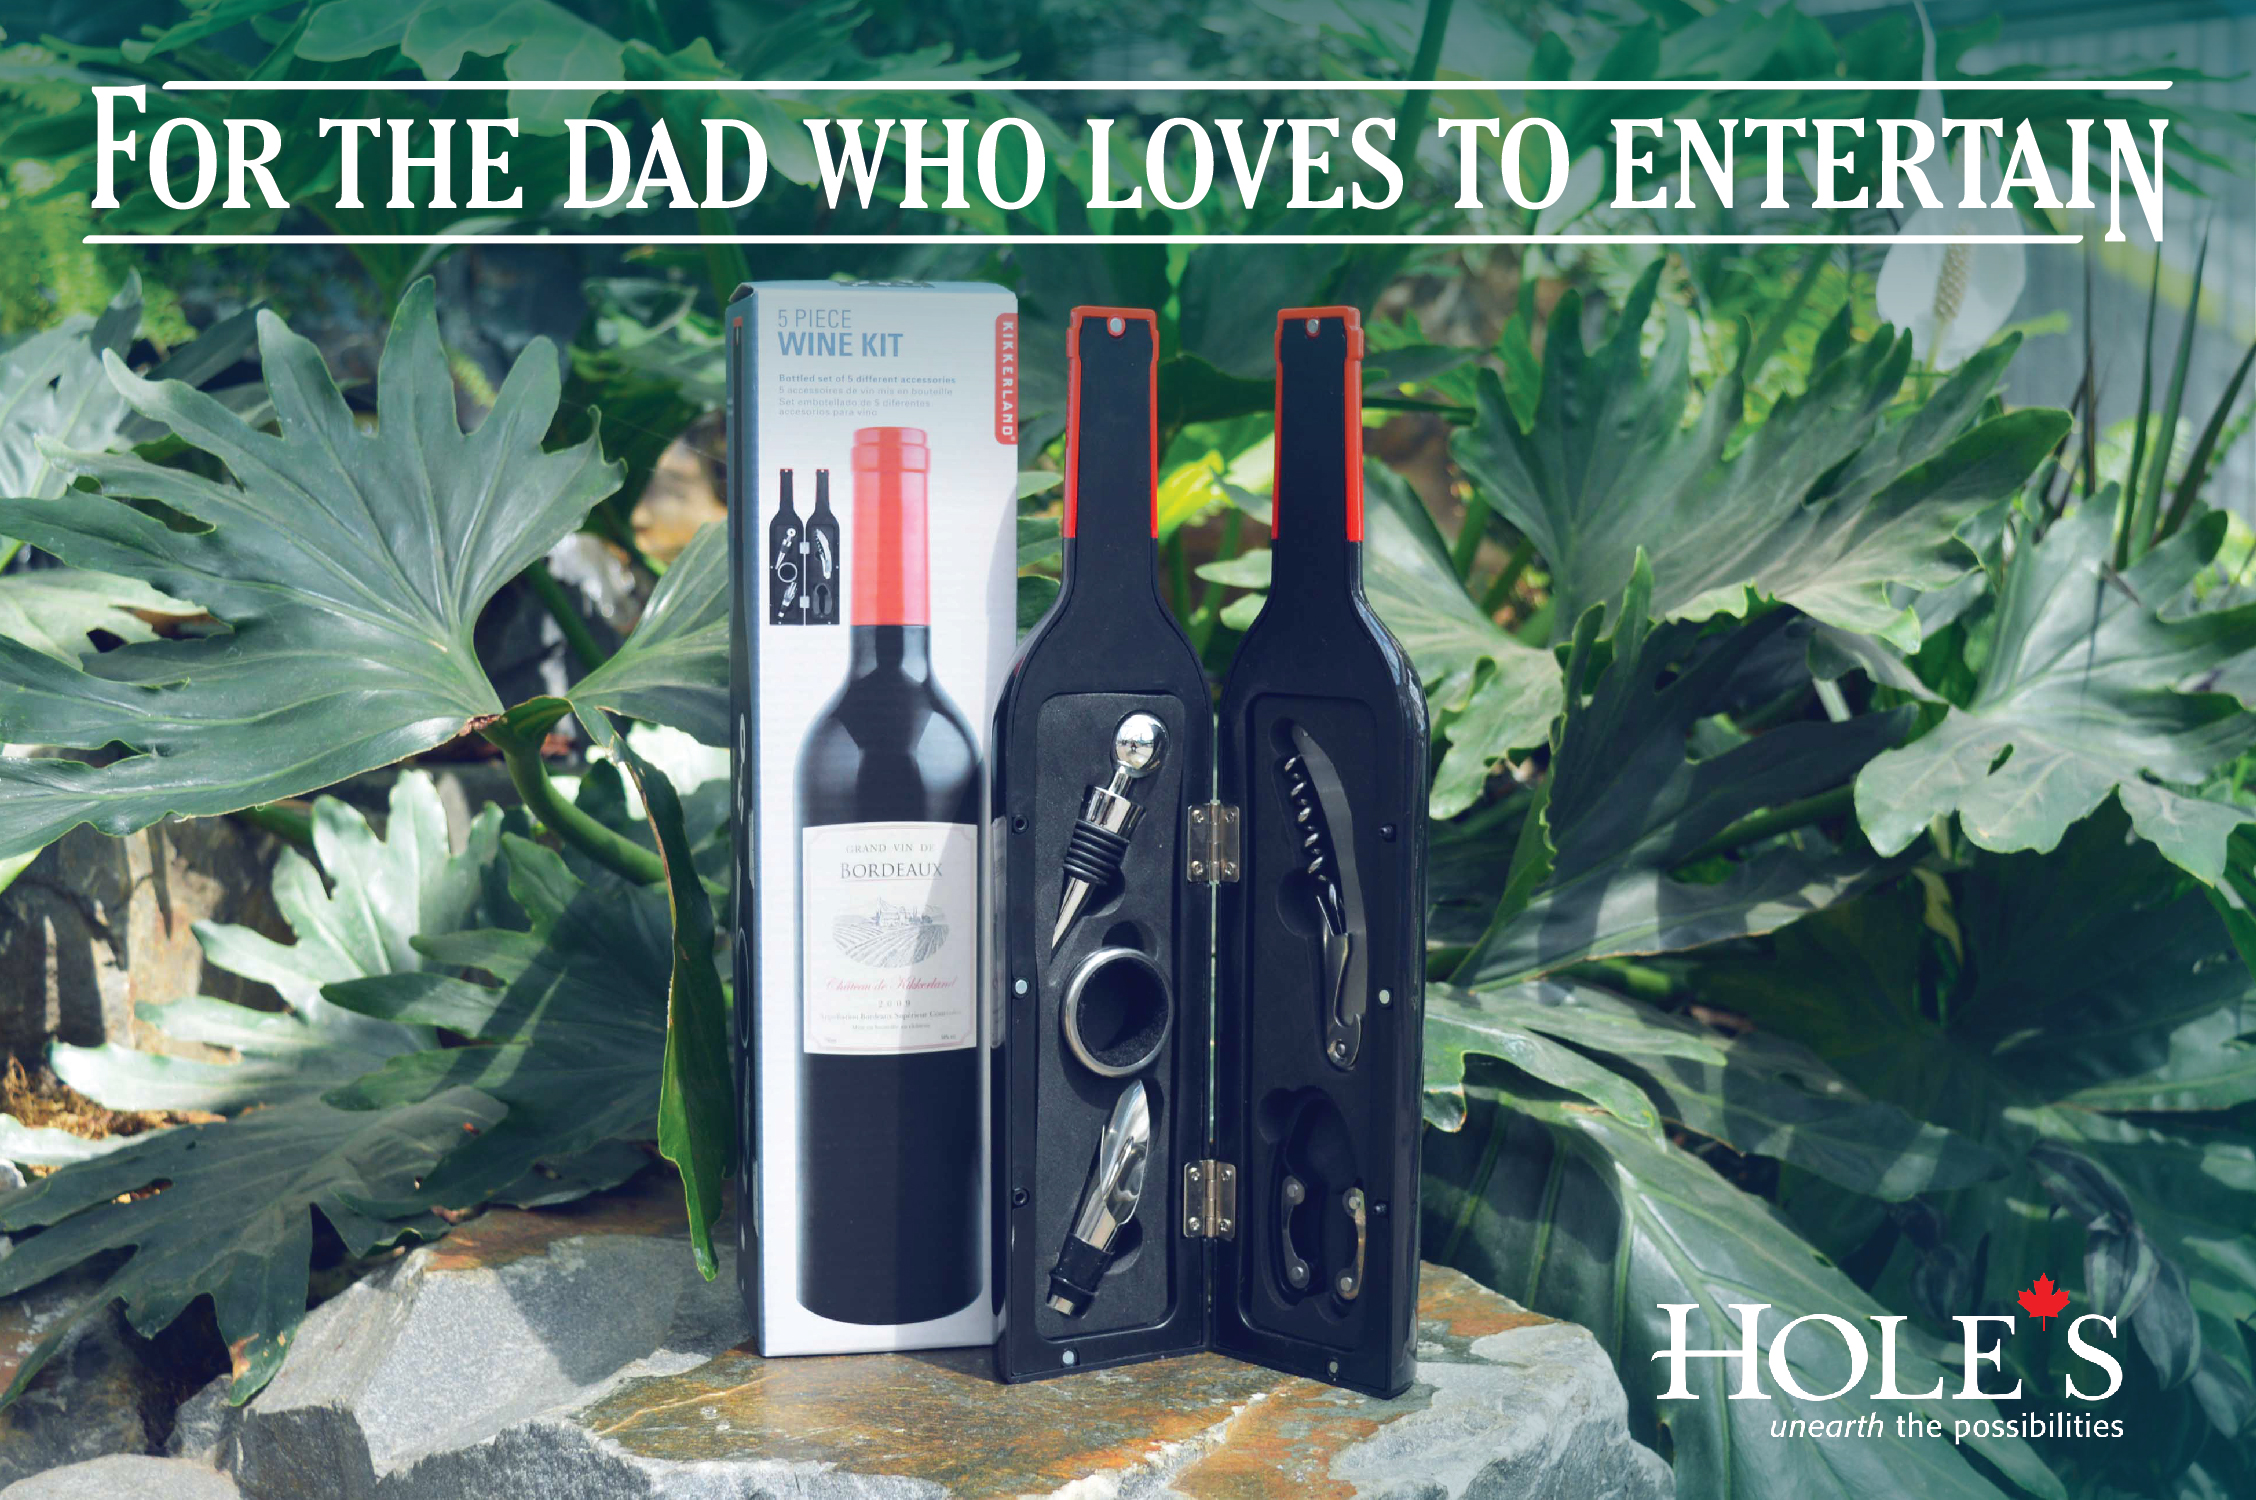 17_06_13-fathersday-giftware-09.jpg